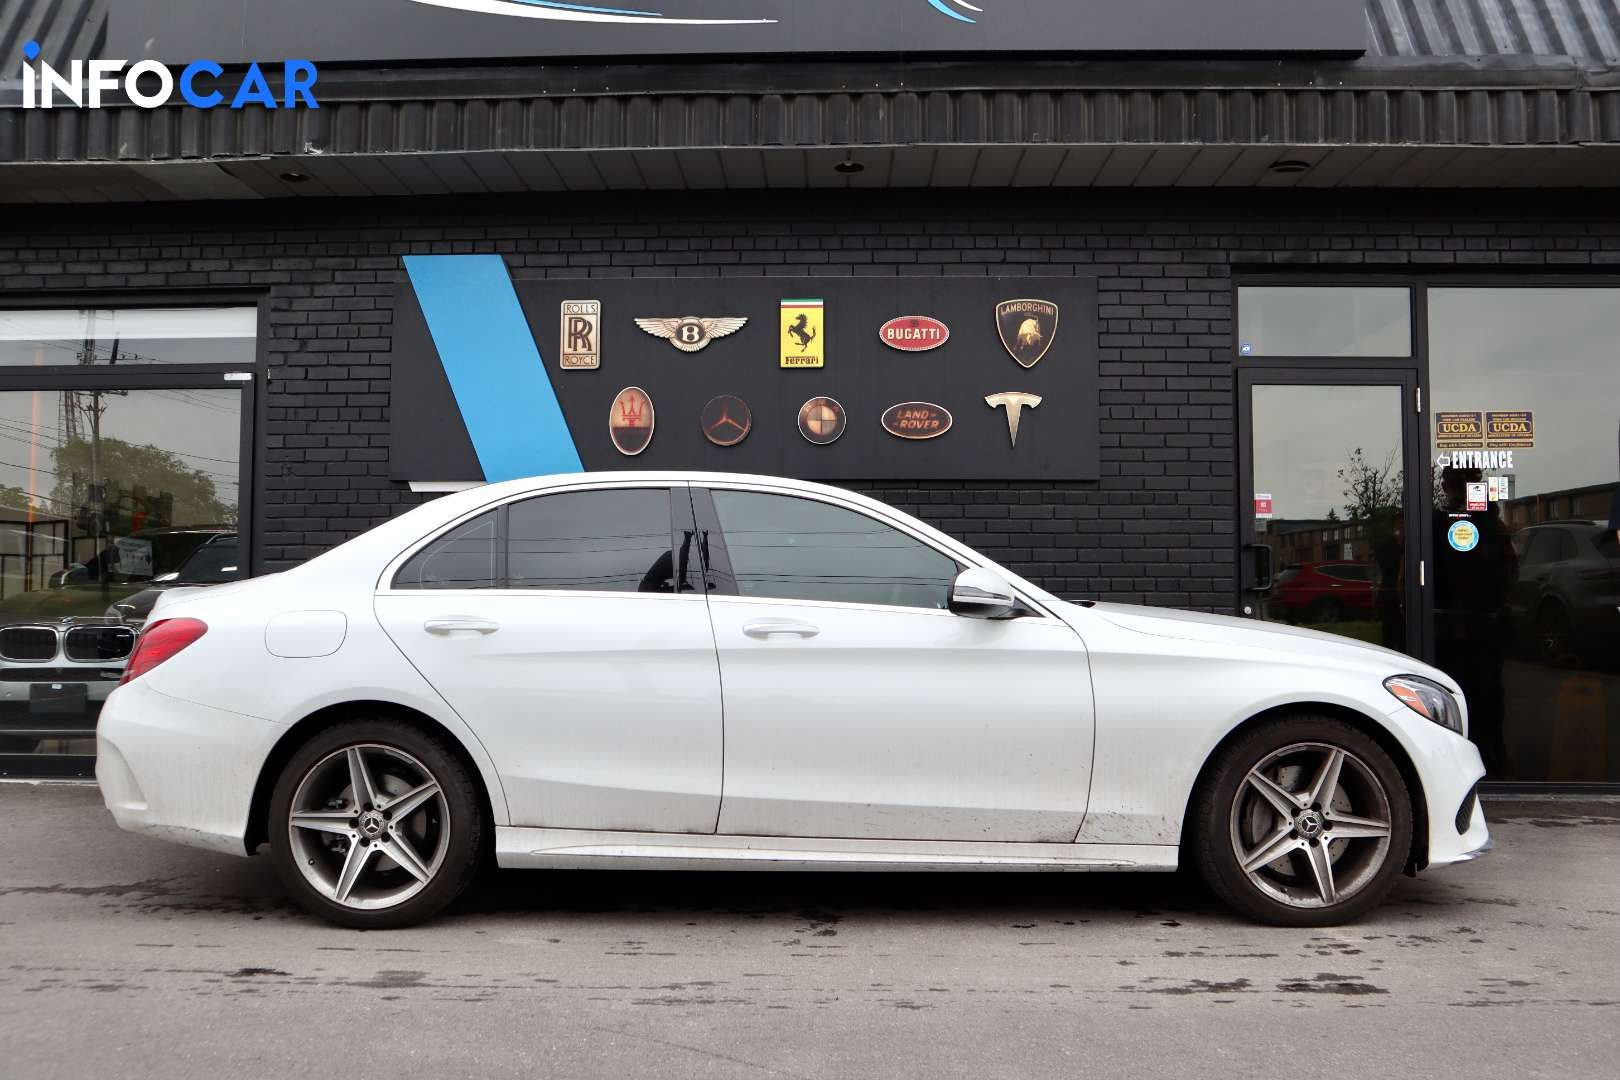 2018 Mercedes-Benz C-Class C300 4MATIC - INFOCAR - Toronto's Most Comprehensive New and Used Auto Trading Platform